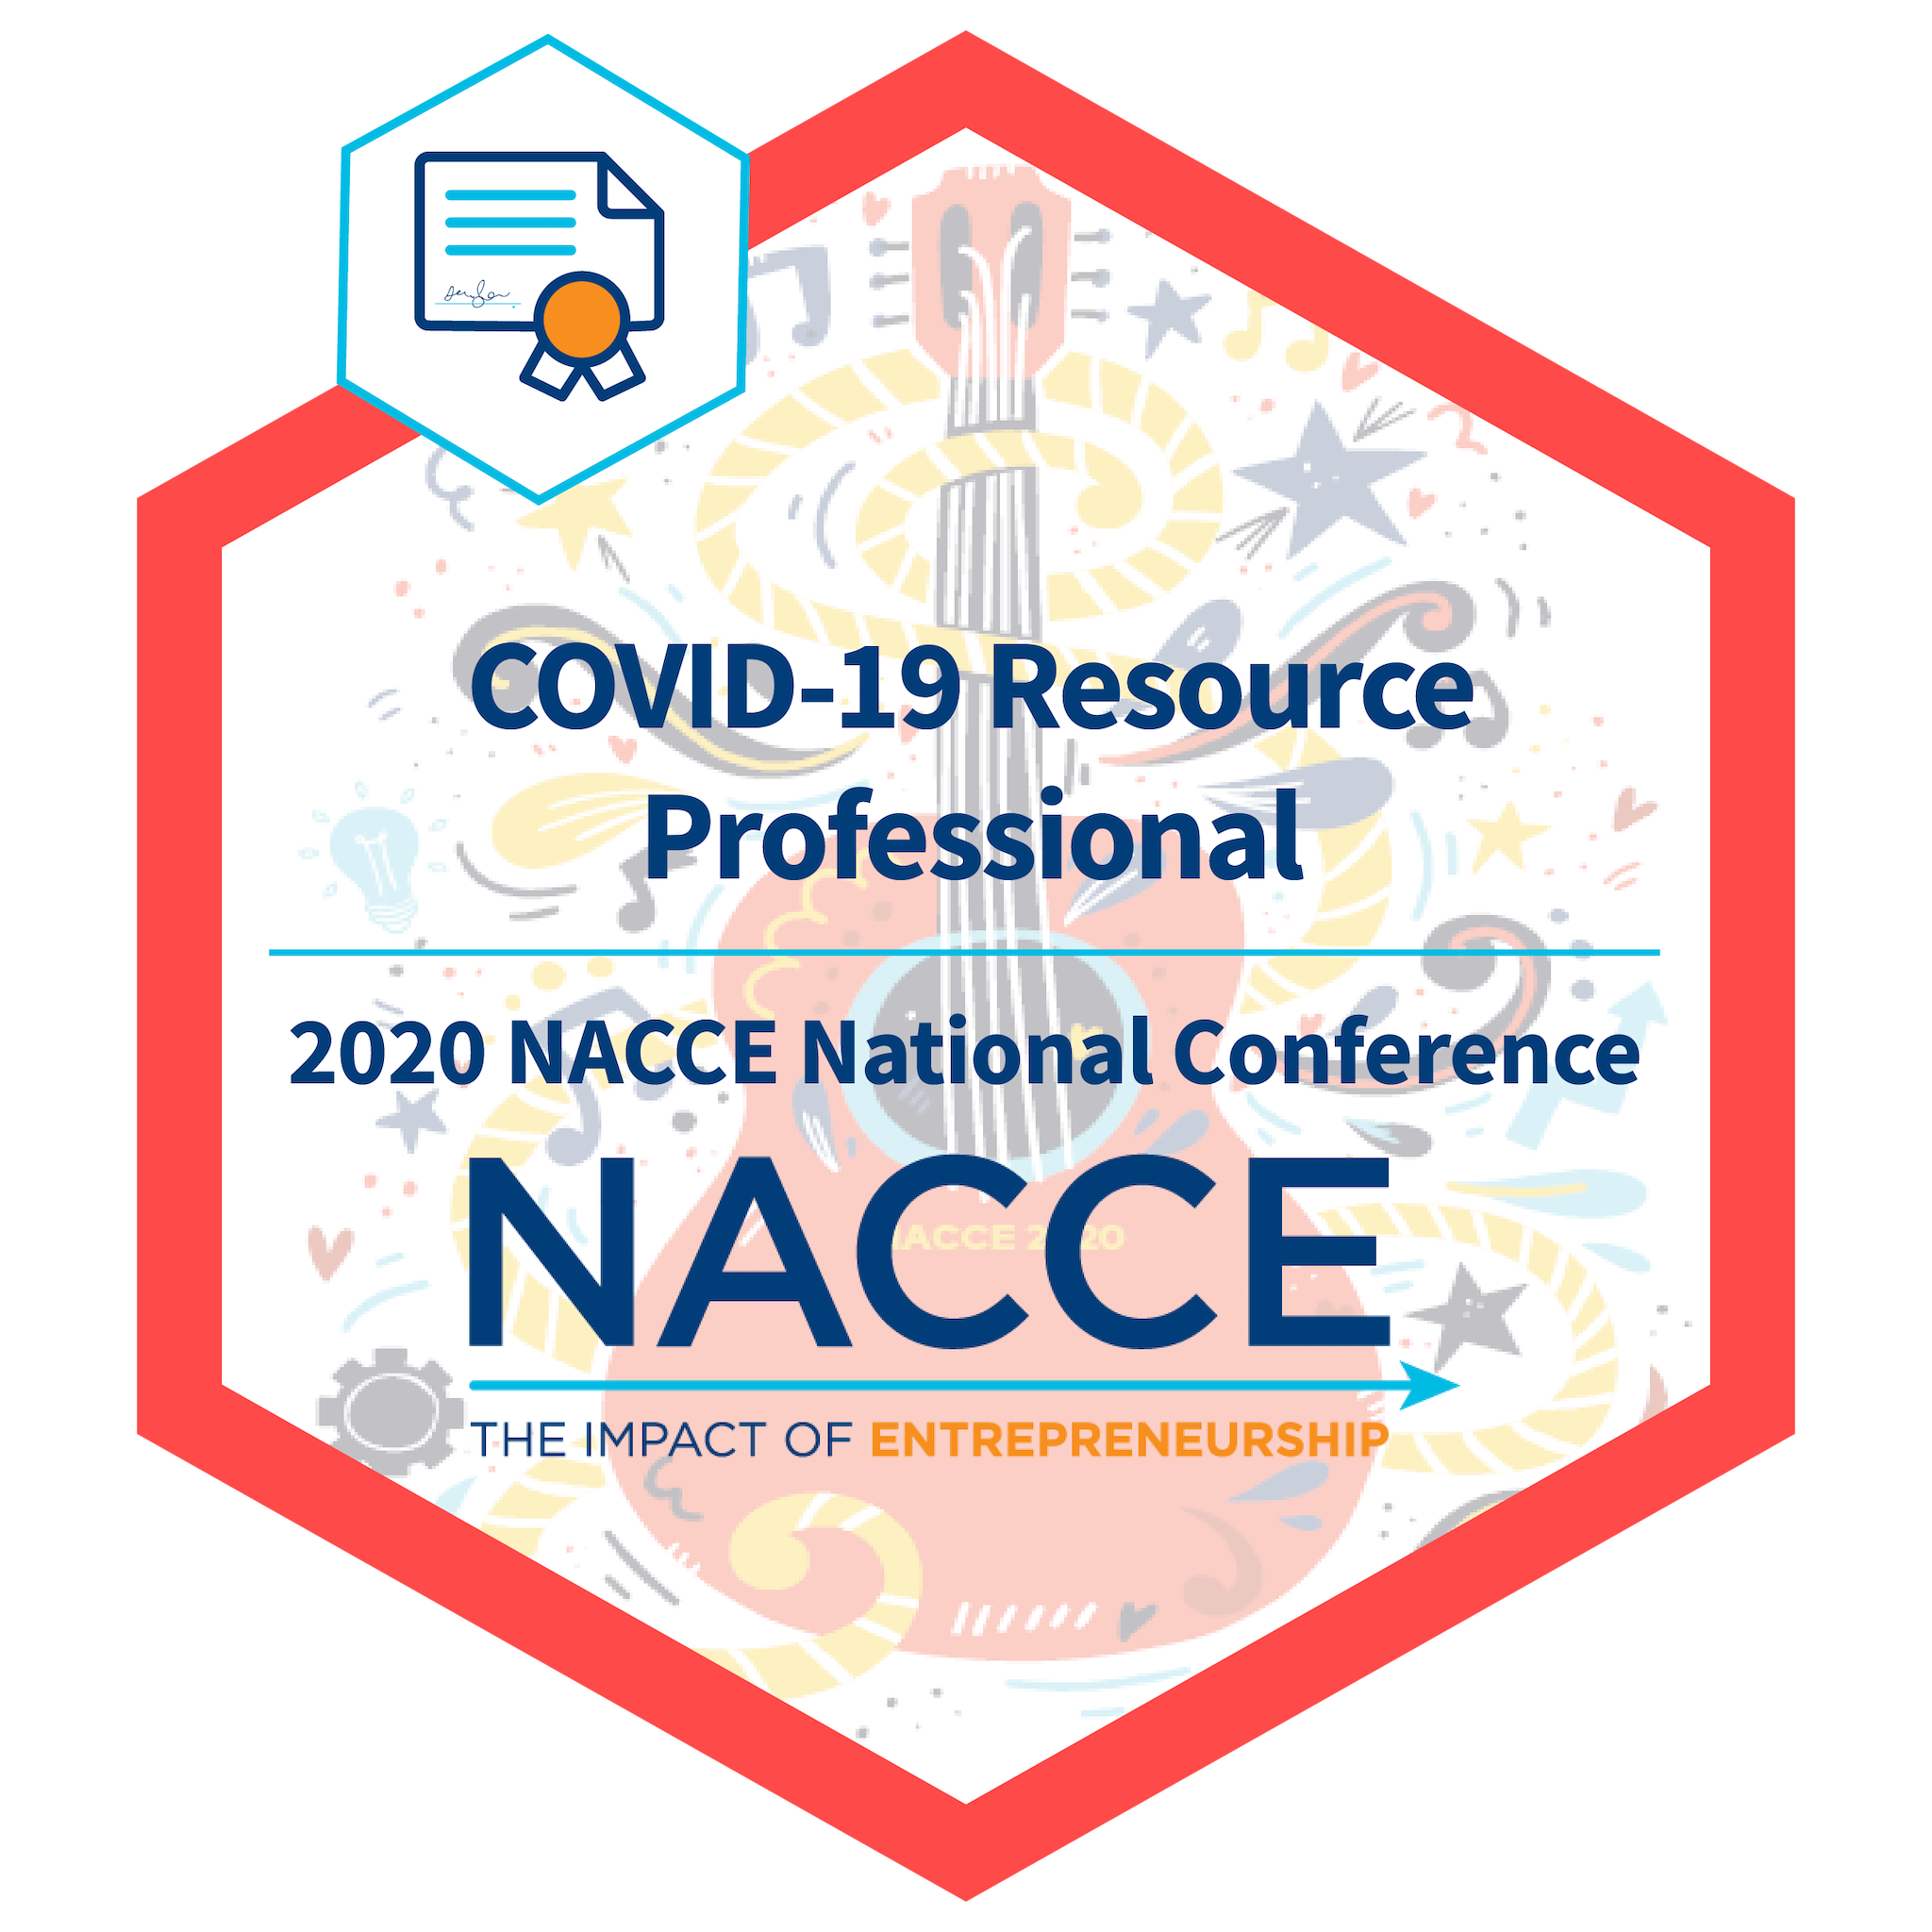 COVID-19 Resource Professional